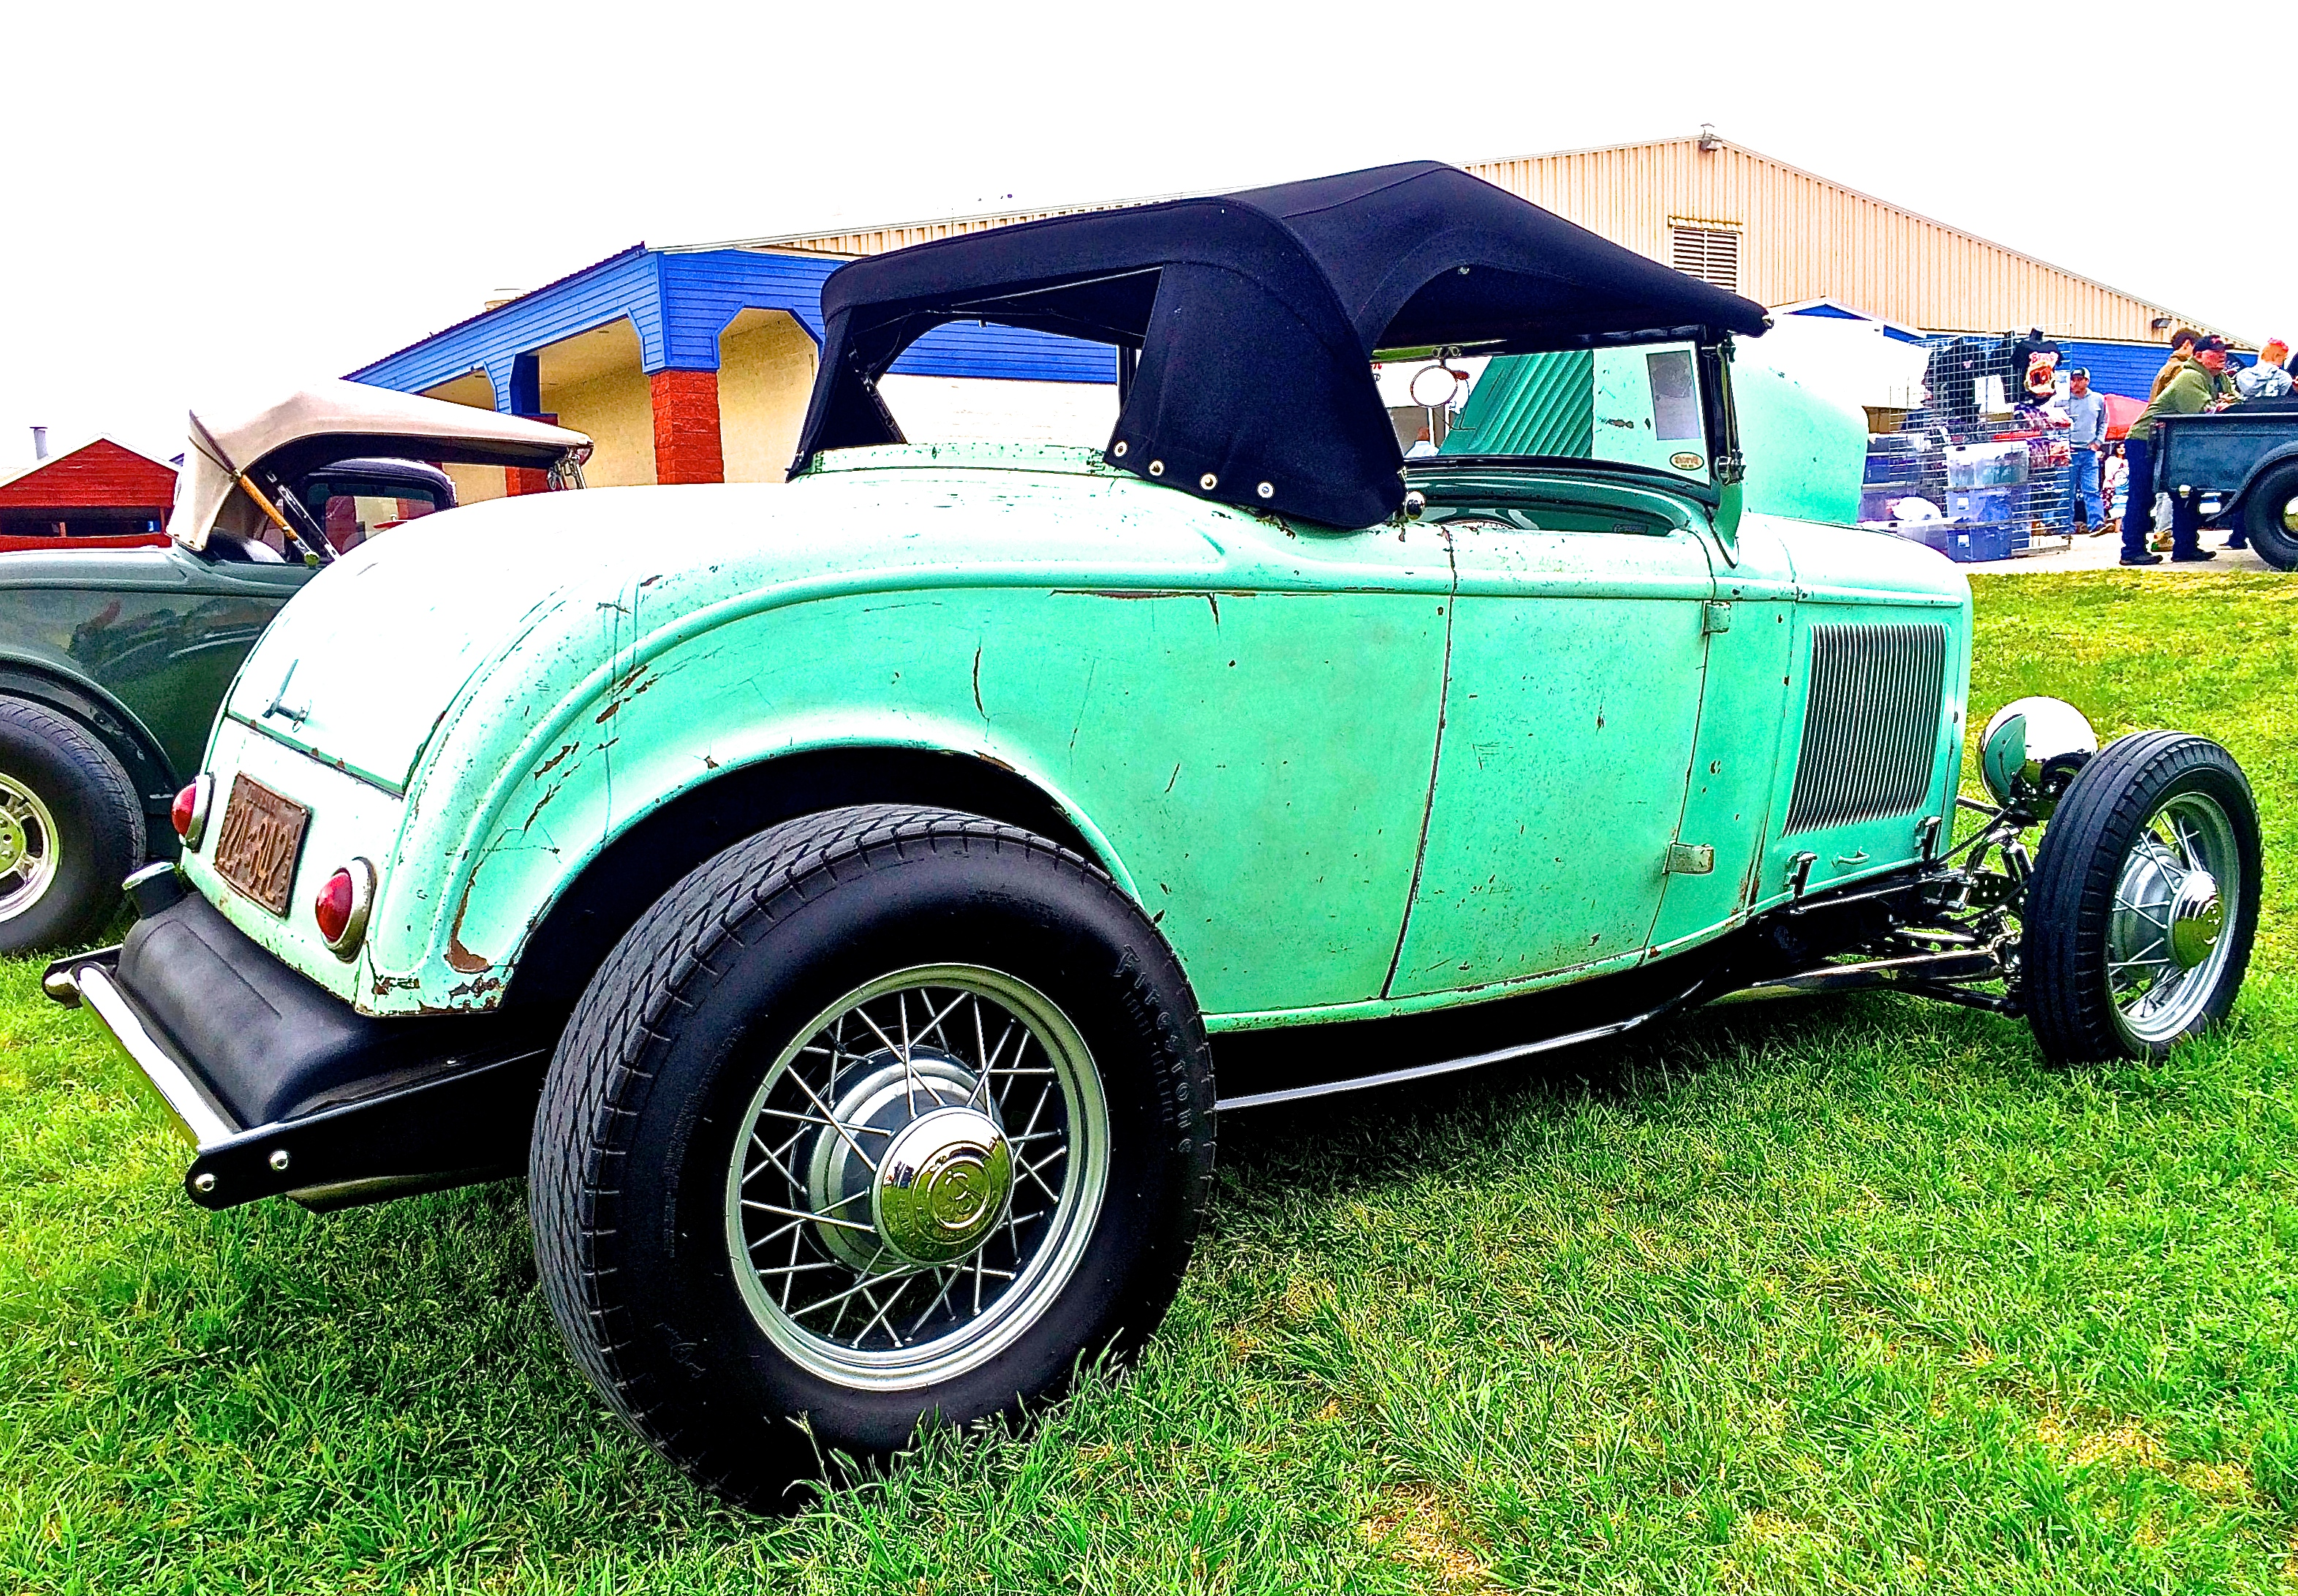 1932 Ford Hot Rod at Camp Mabry | ATX Car Pictures | Real Pics from ...